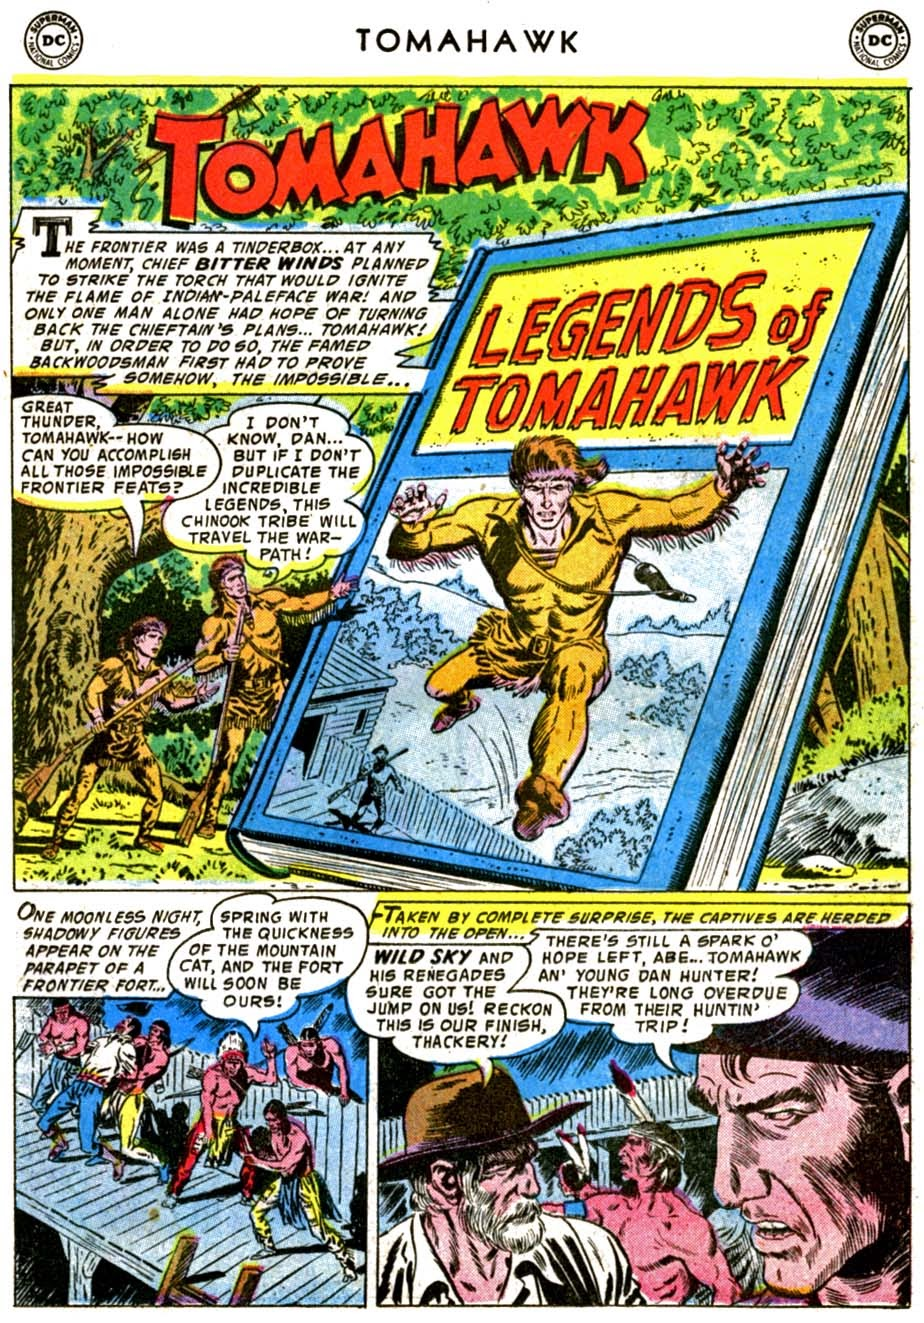 Read online Tomahawk comic -  Issue #48 - 15